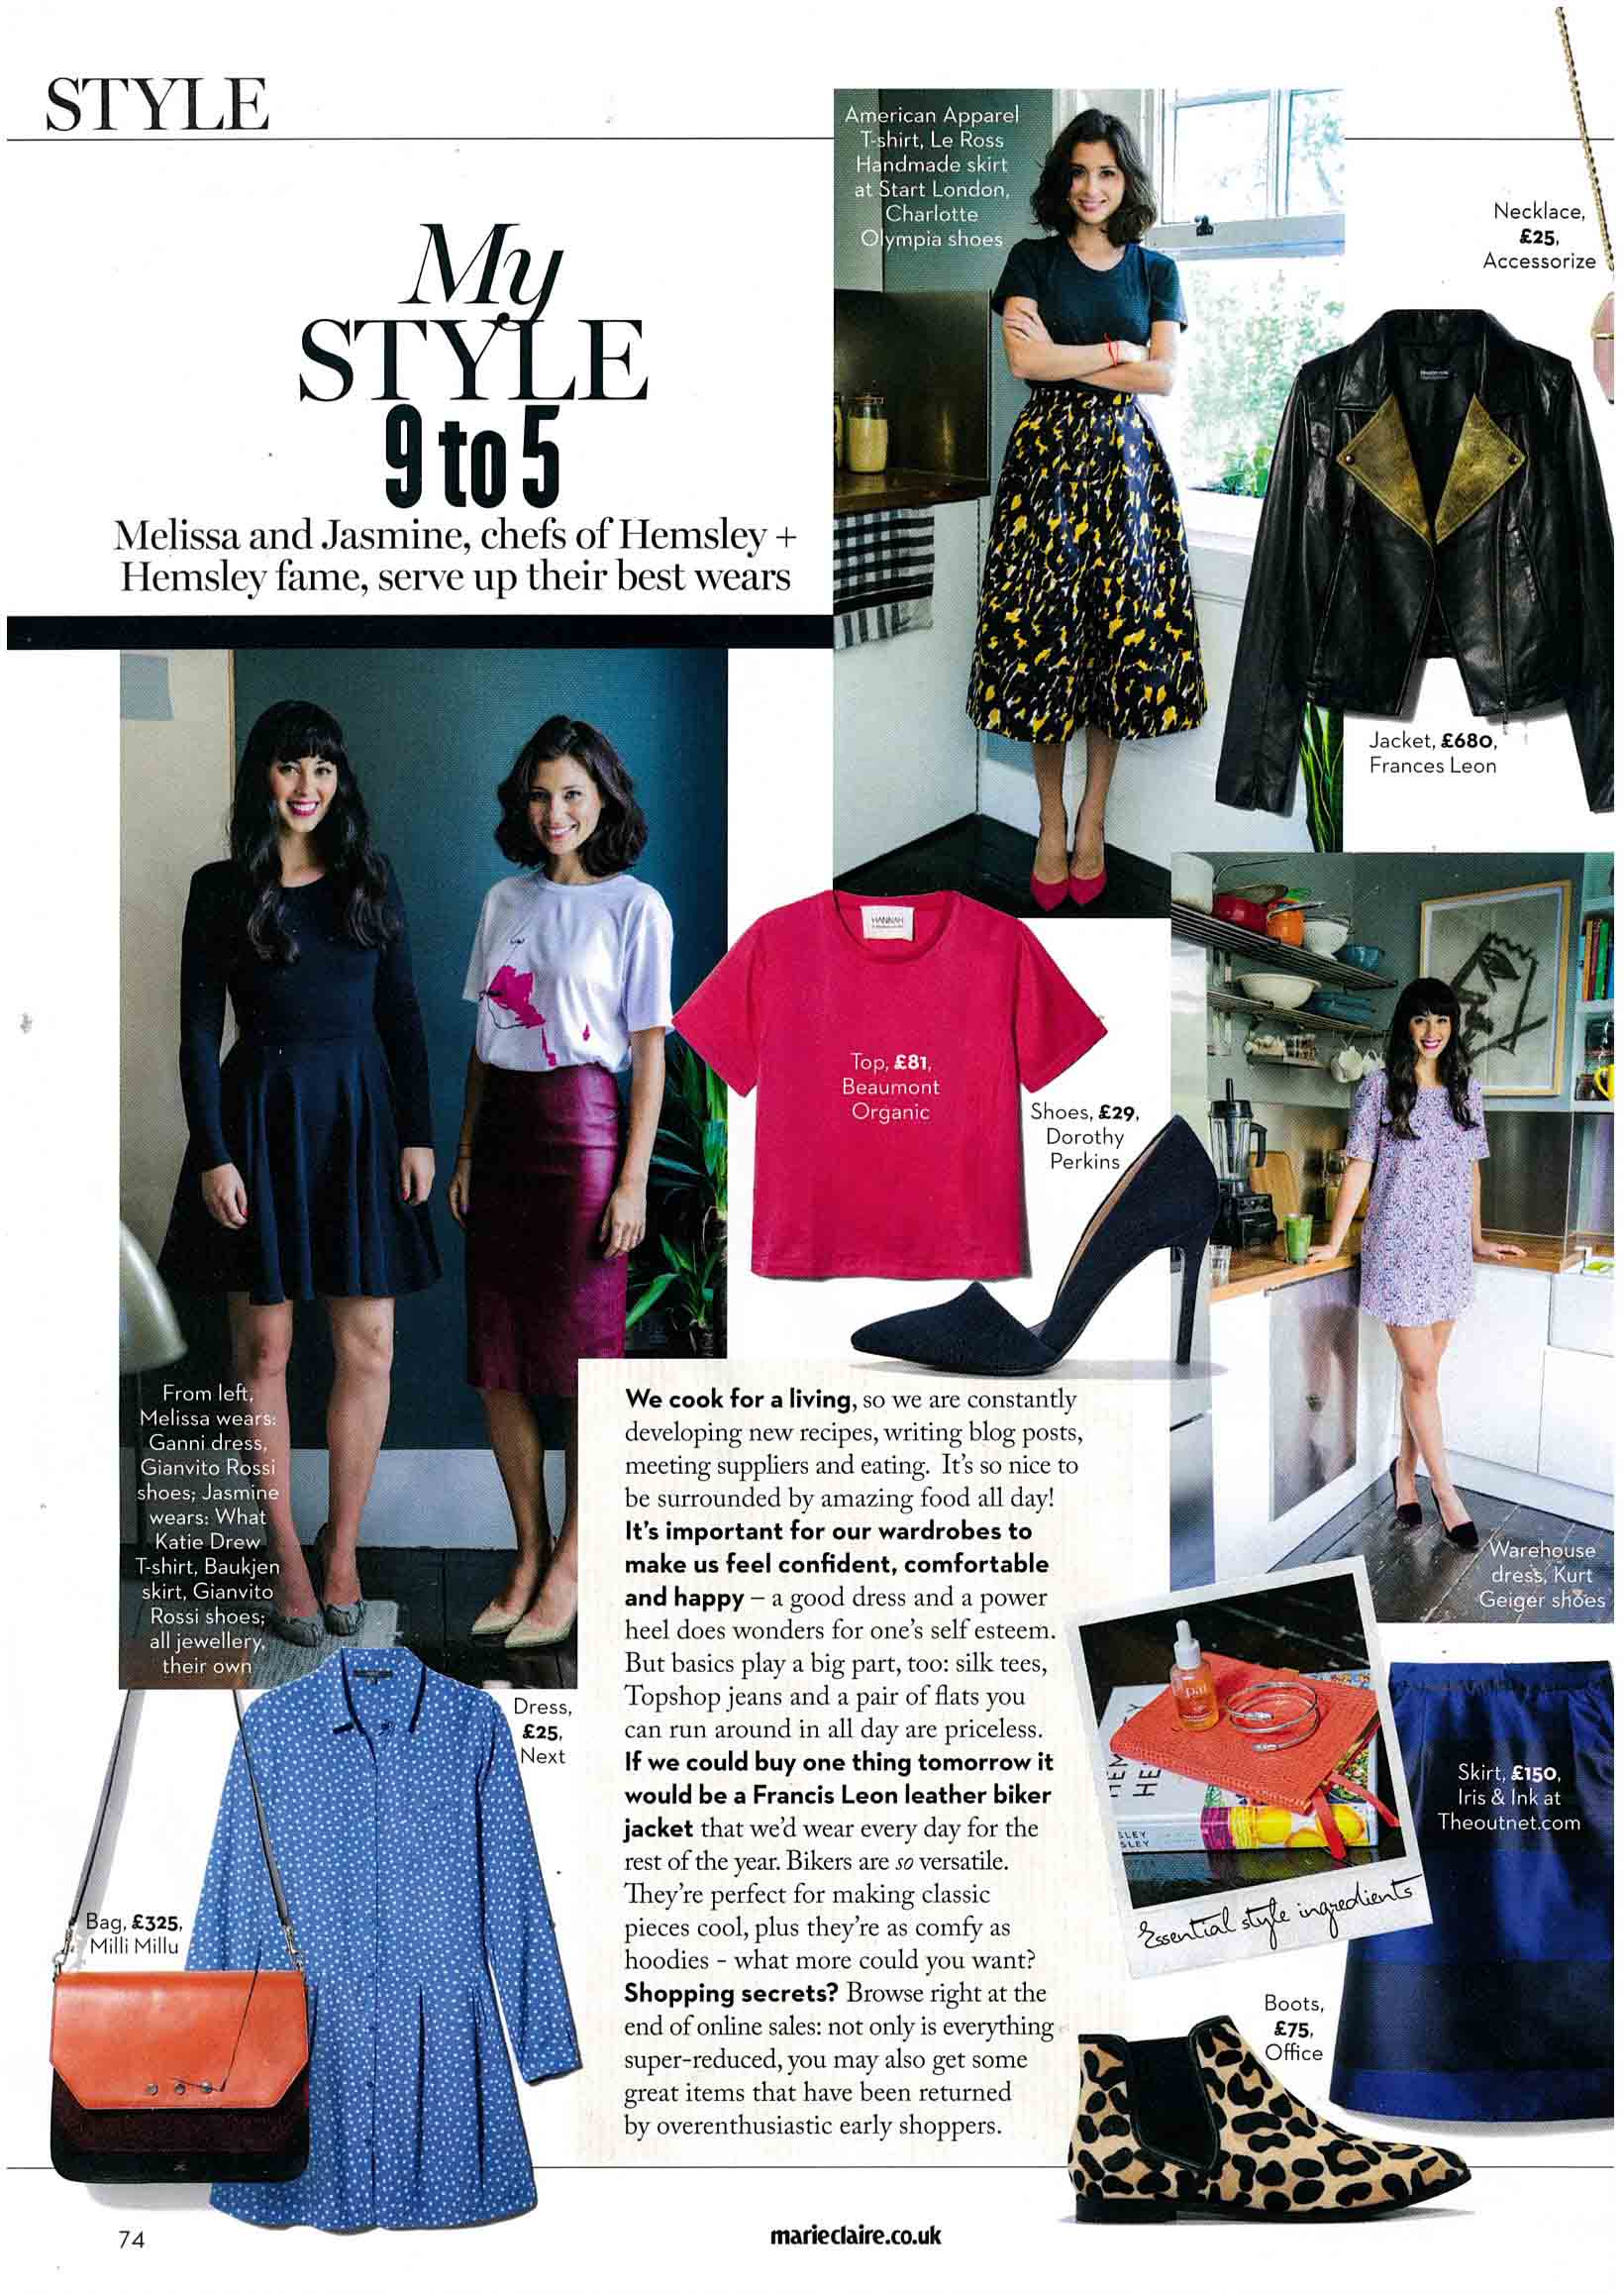 Marie Claire Magazine Coverage Sept 2014